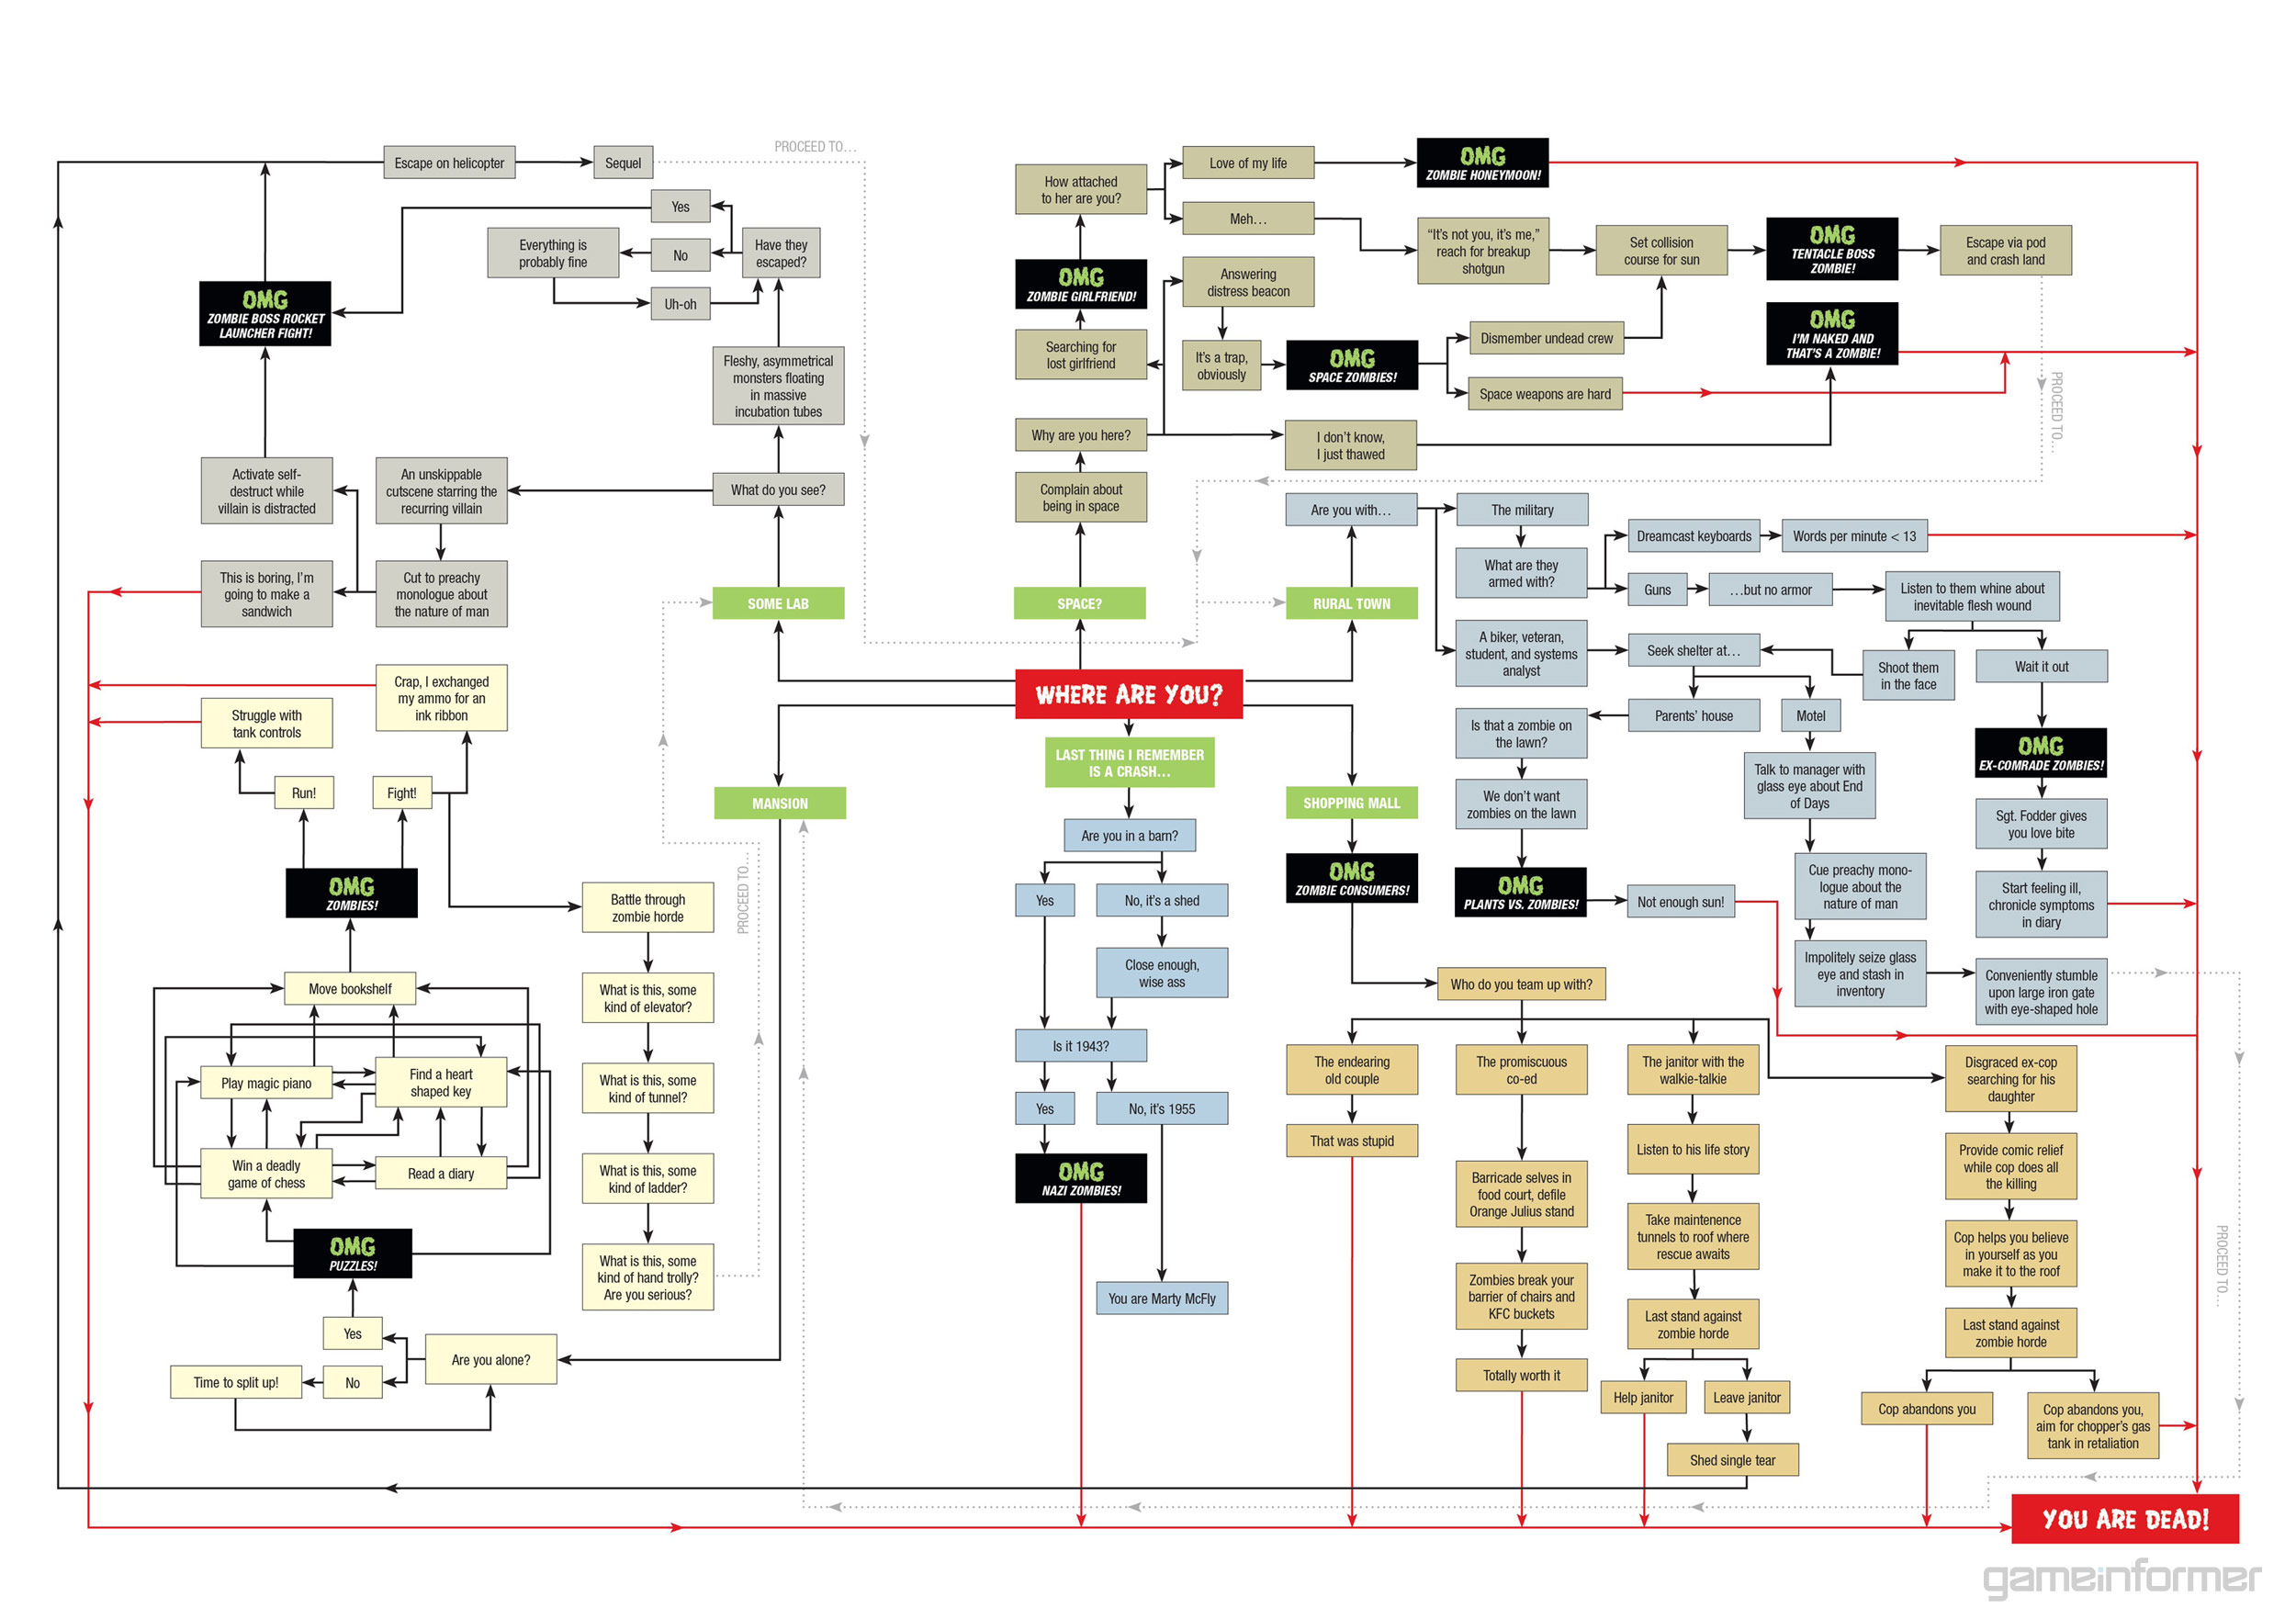 Zombie Flowchart - Click To View Image